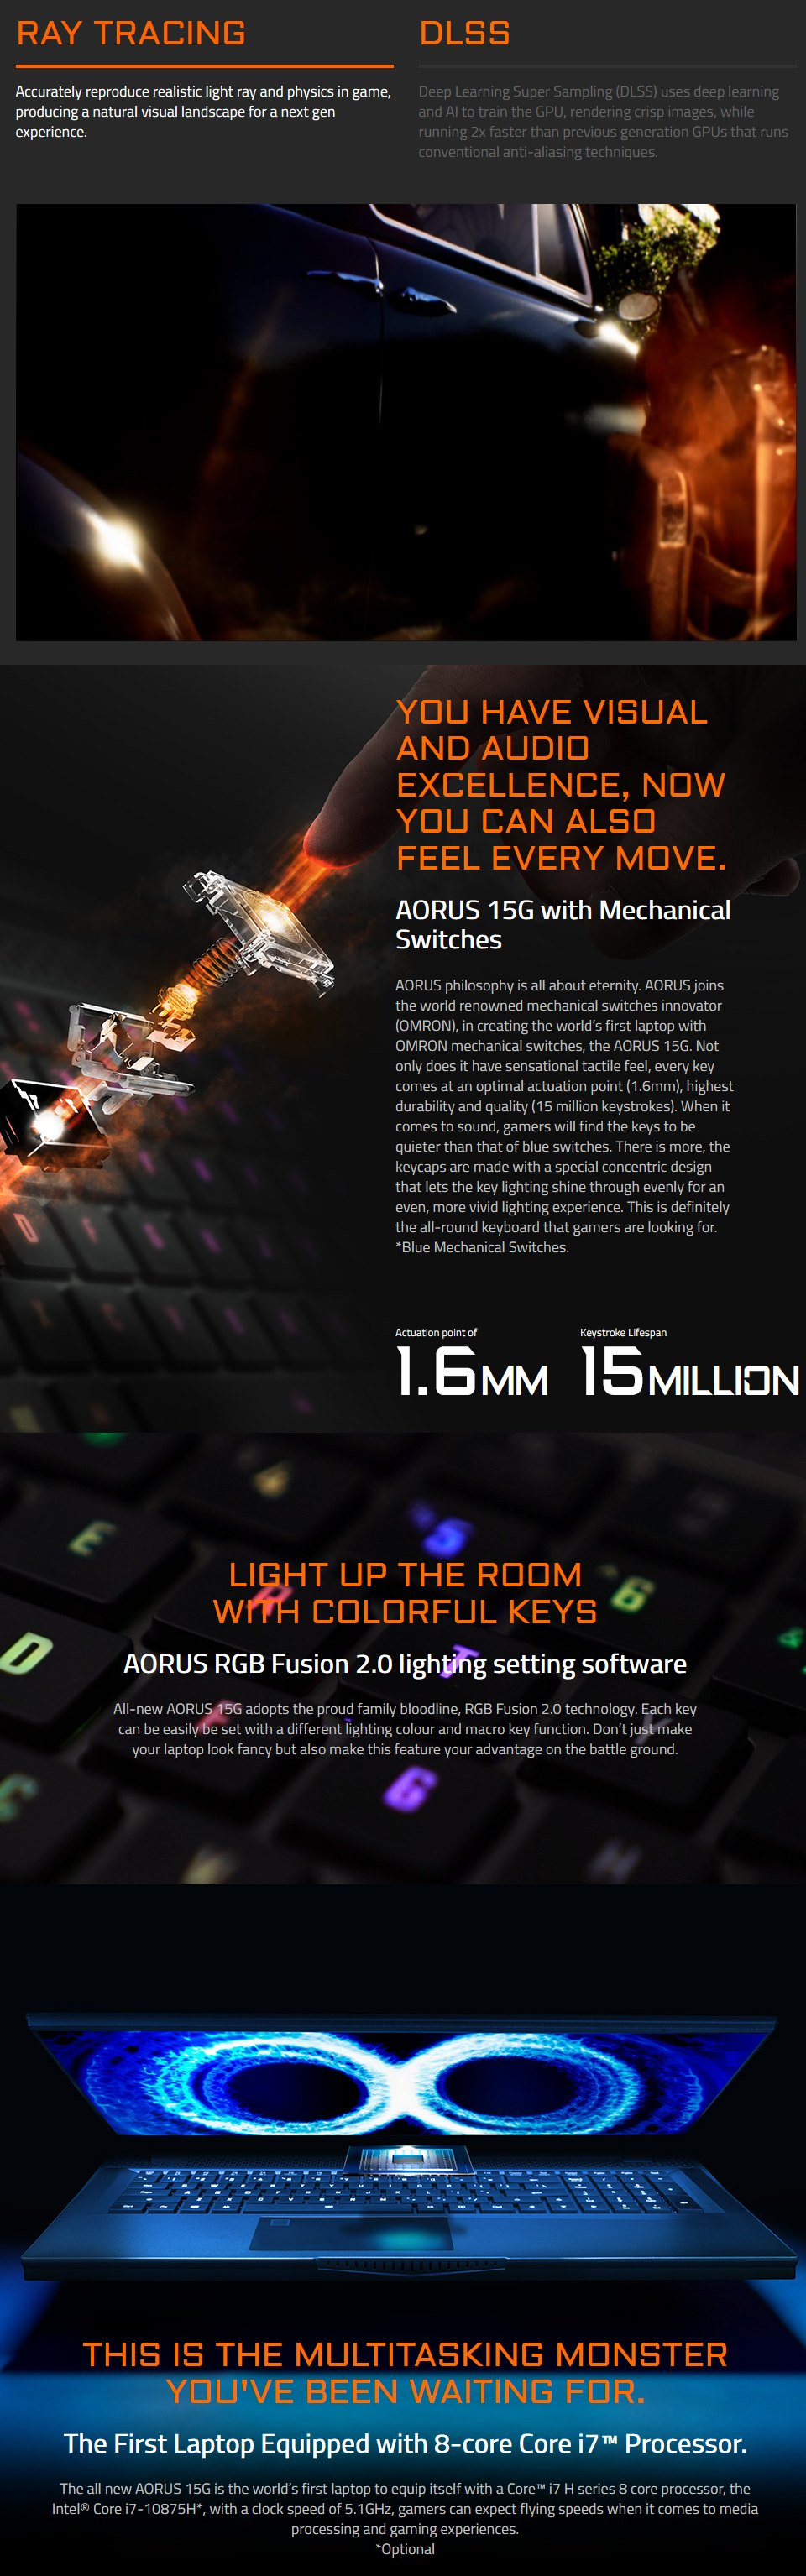 Gigabyte AORUS 15 Core i7 RTX 2070 Super 15.6in 240Hz Gaming Laptop features 2